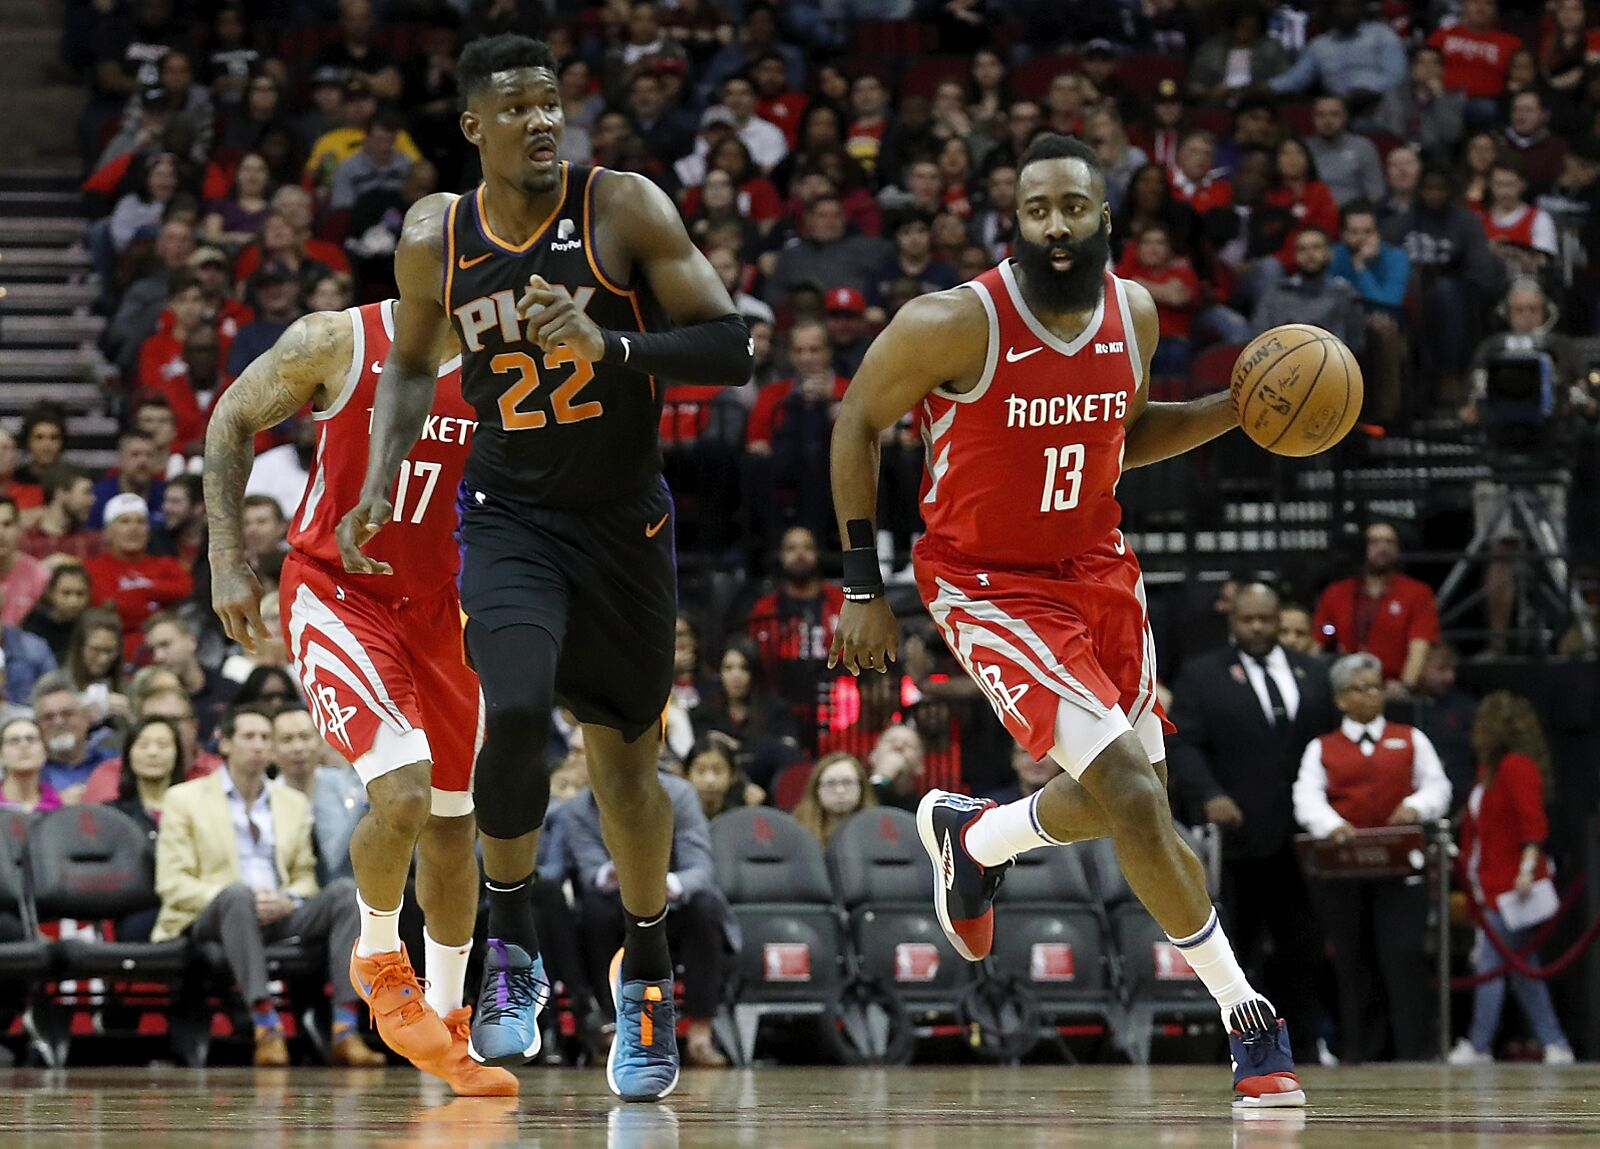 How will they fare? The Phoenix Suns vs the Southwest Division